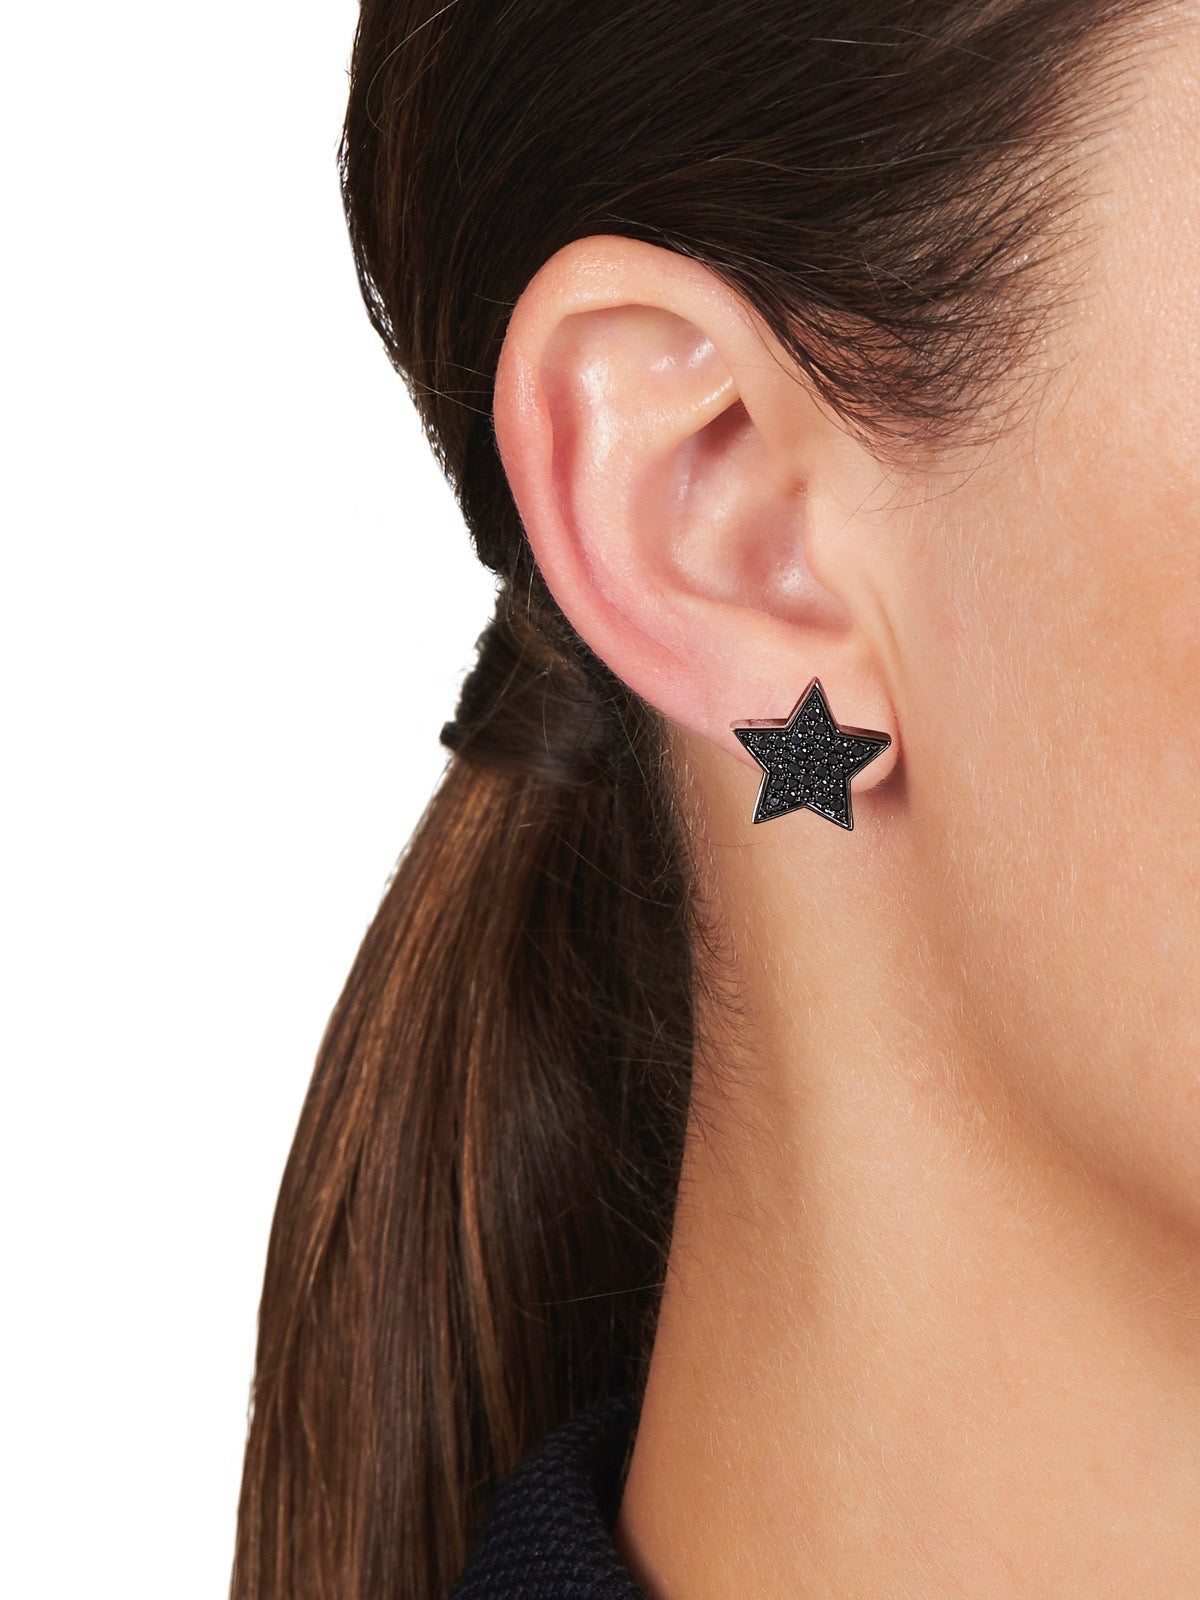 STASIA SUPERSTAR Black Diamond Stud